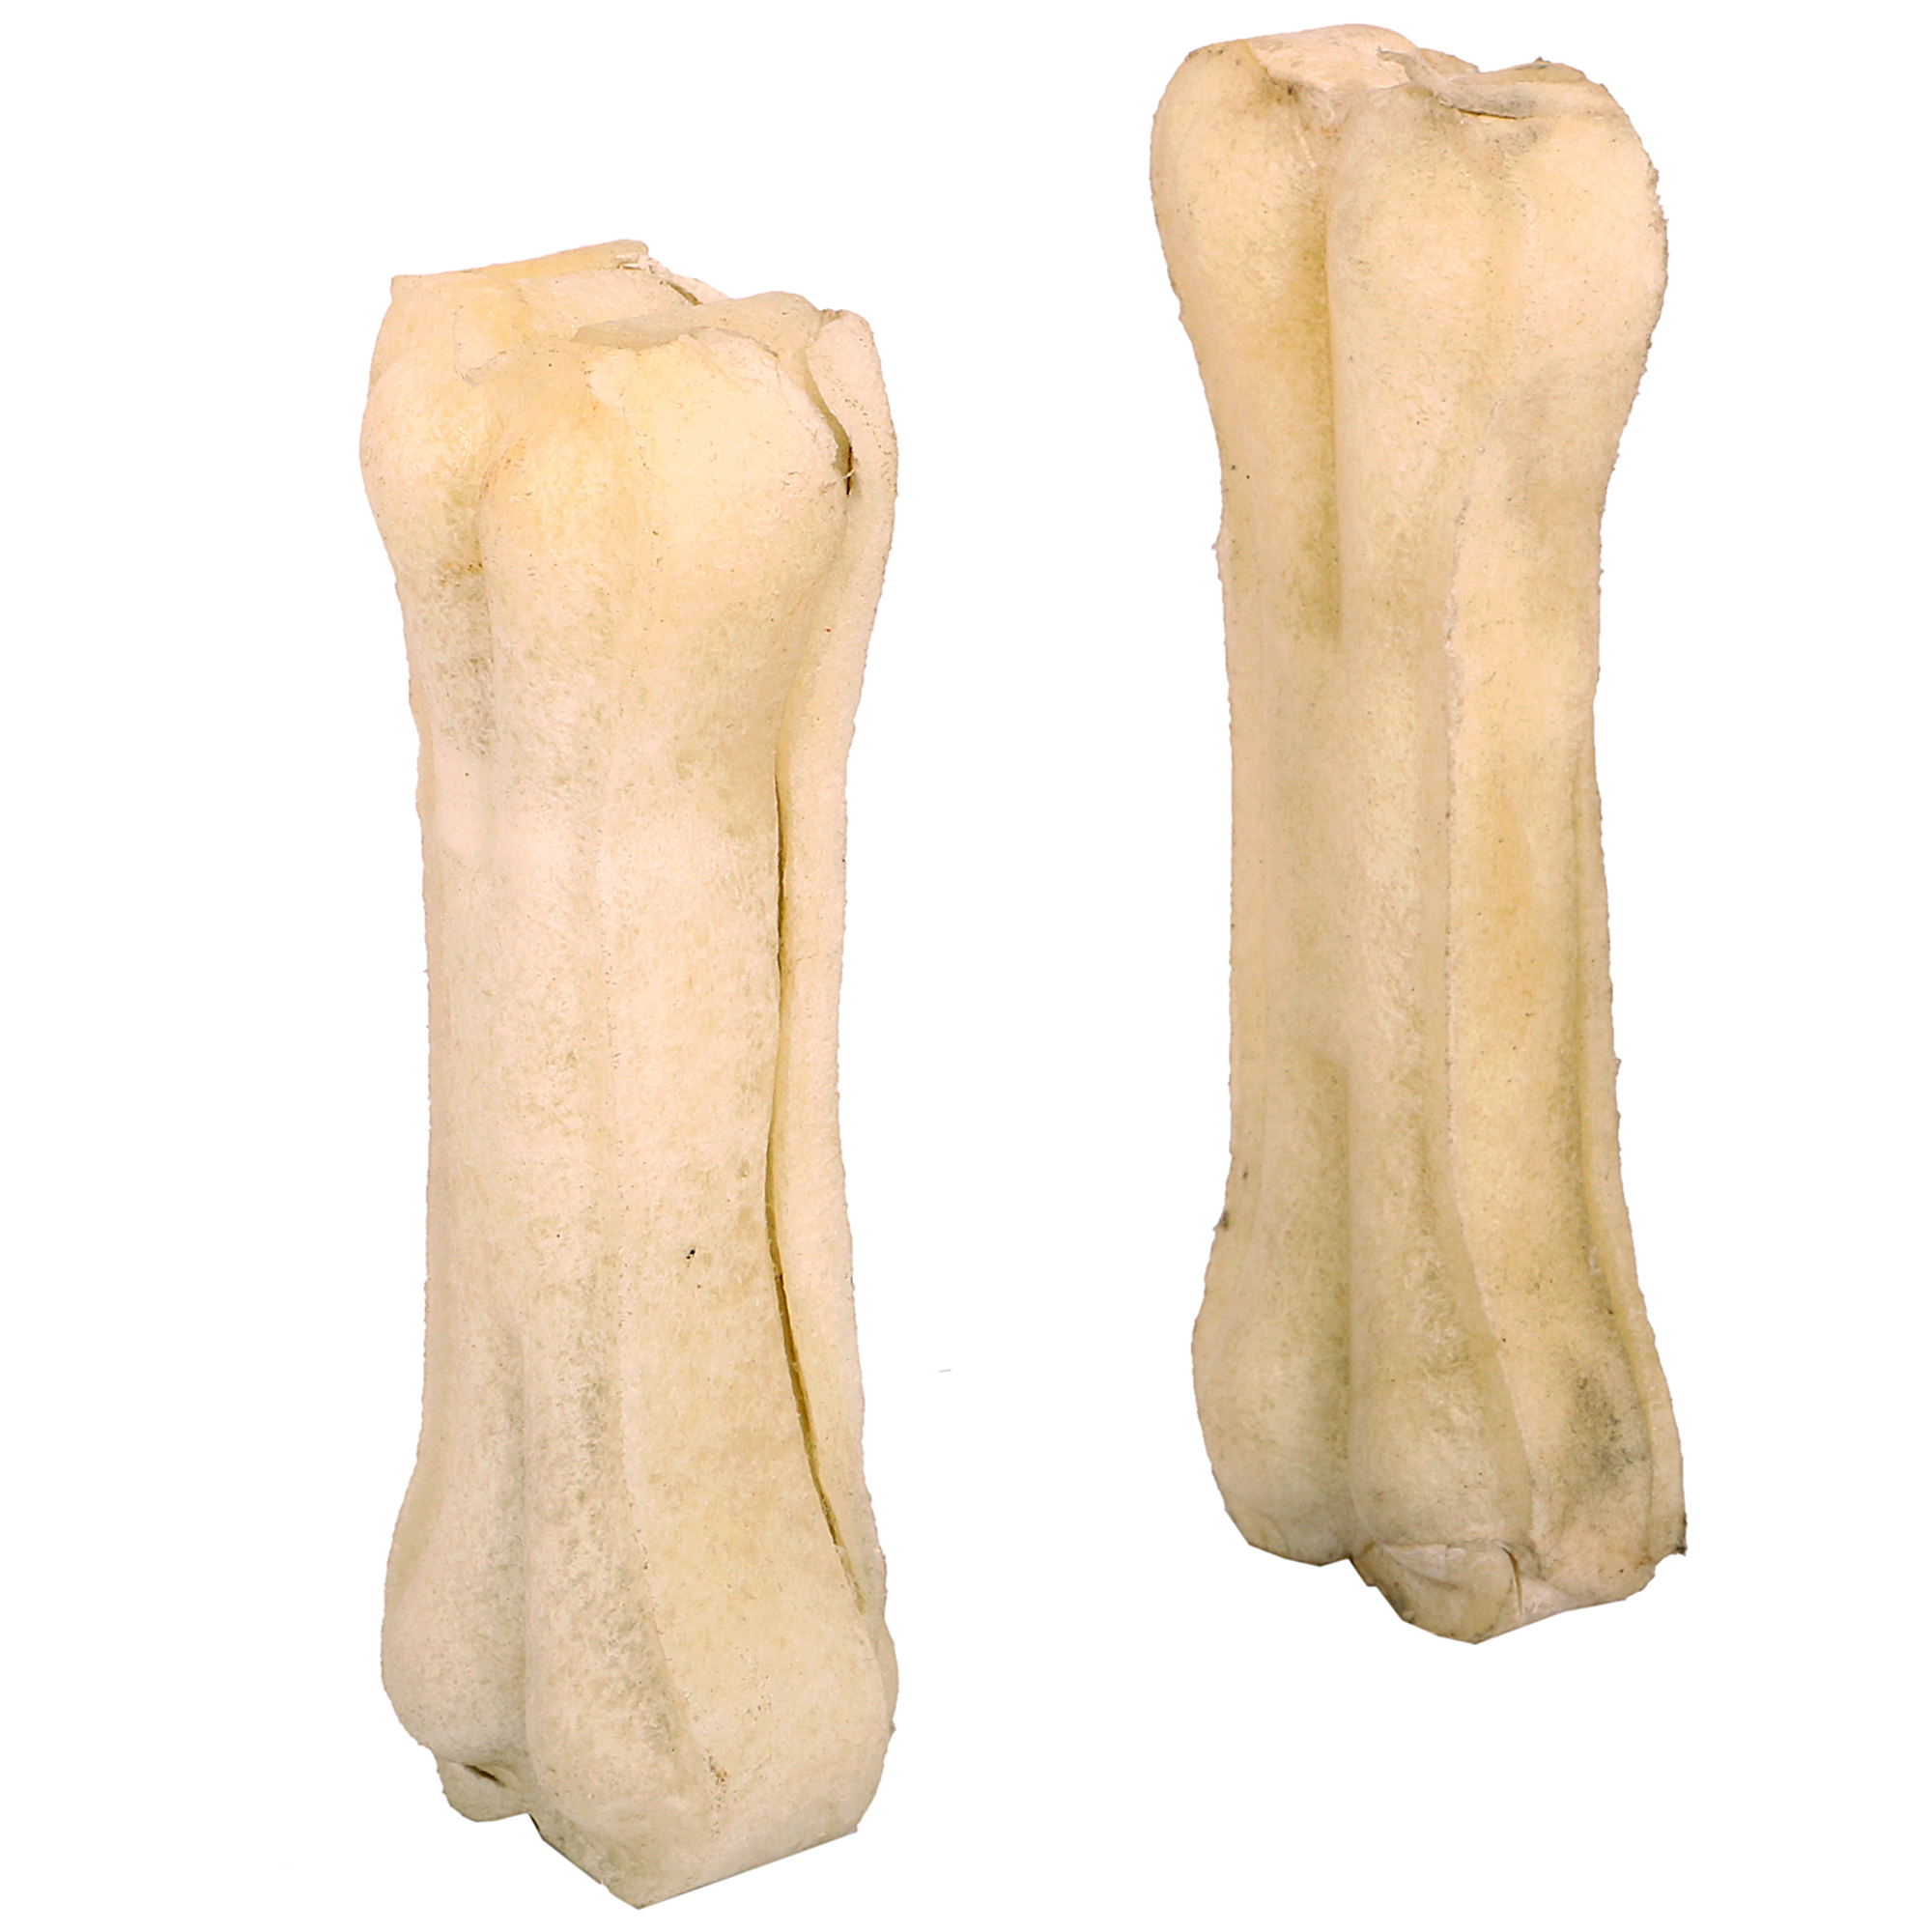 DogSpot Rawhide Bones 5 Inches - 2 Pieces (Pack Of 2)